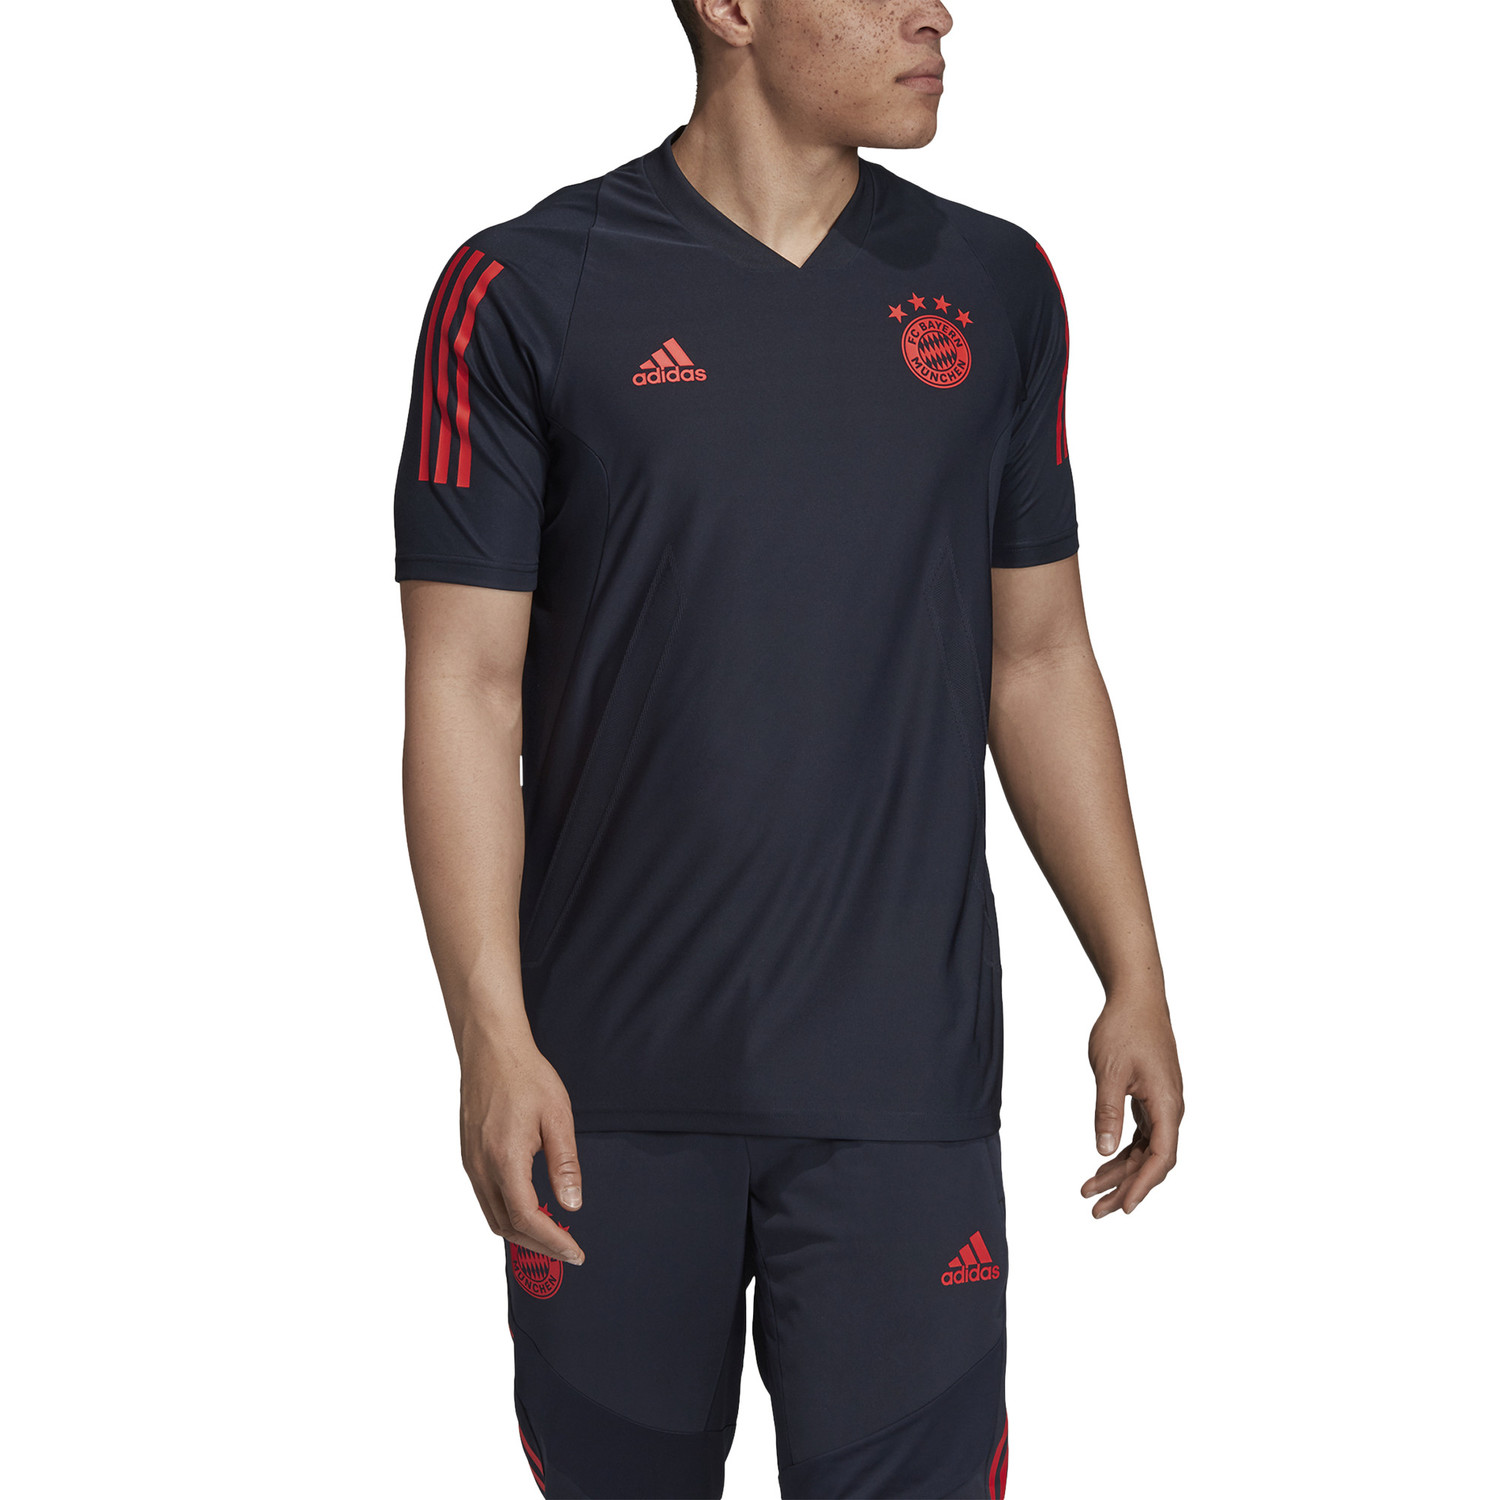 Maillot entraînement Bayern Munich bleu orange 201920